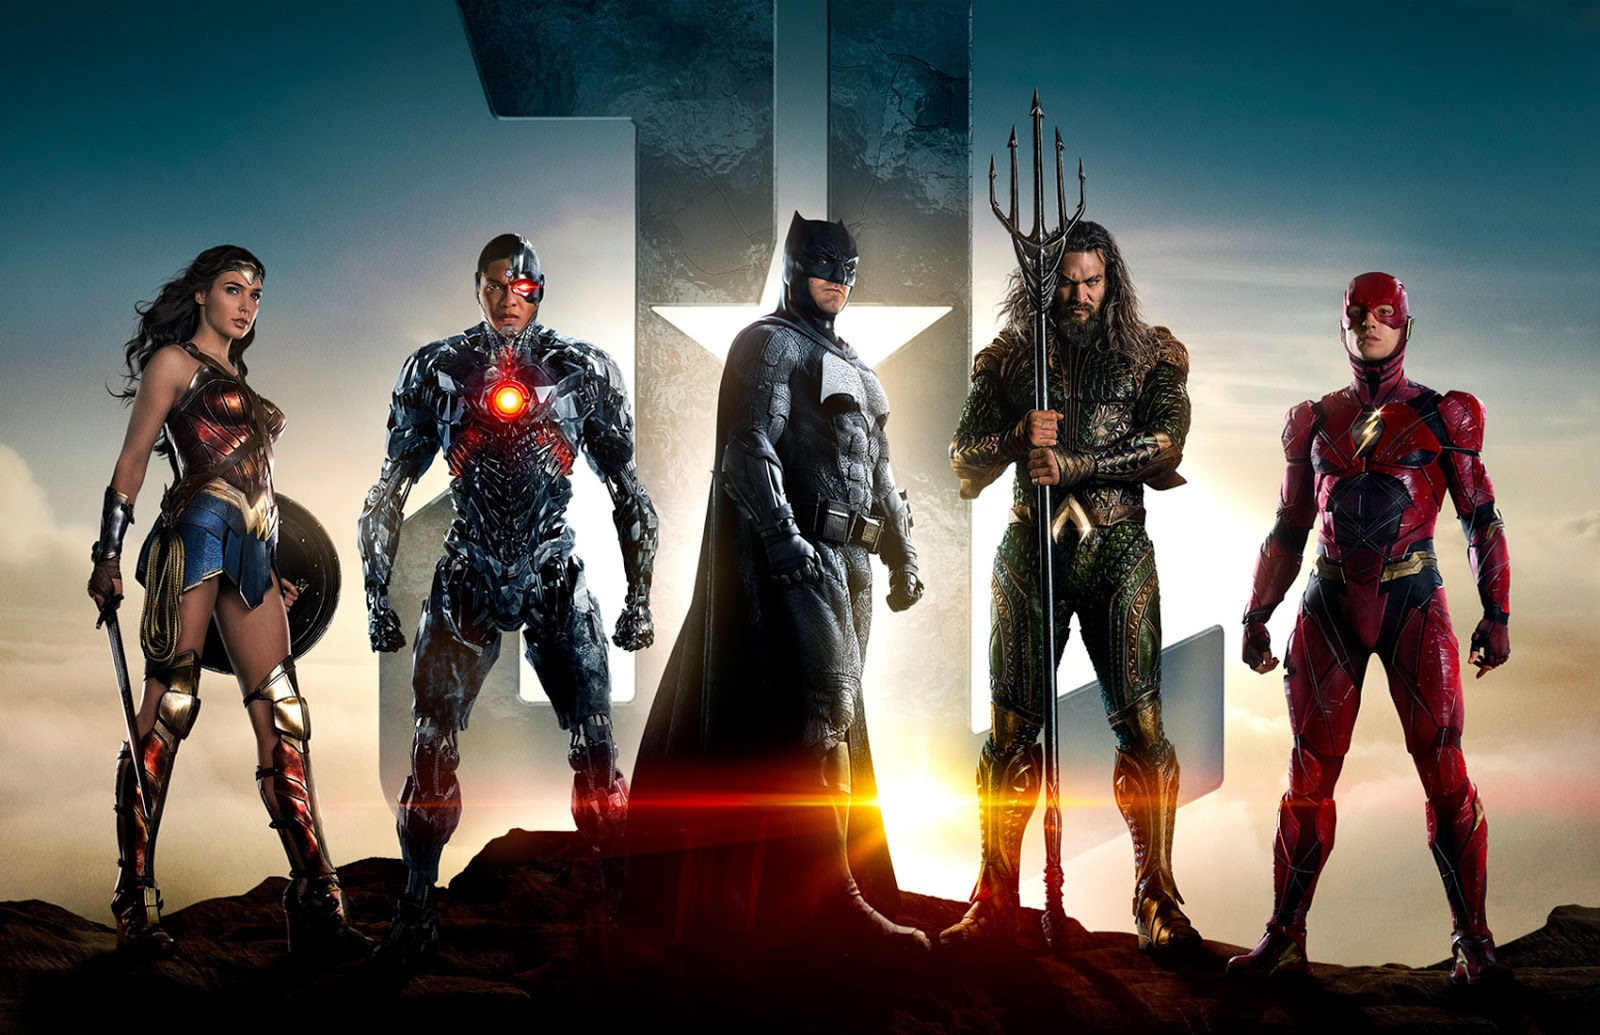 'Justice League' Movie Review: The League